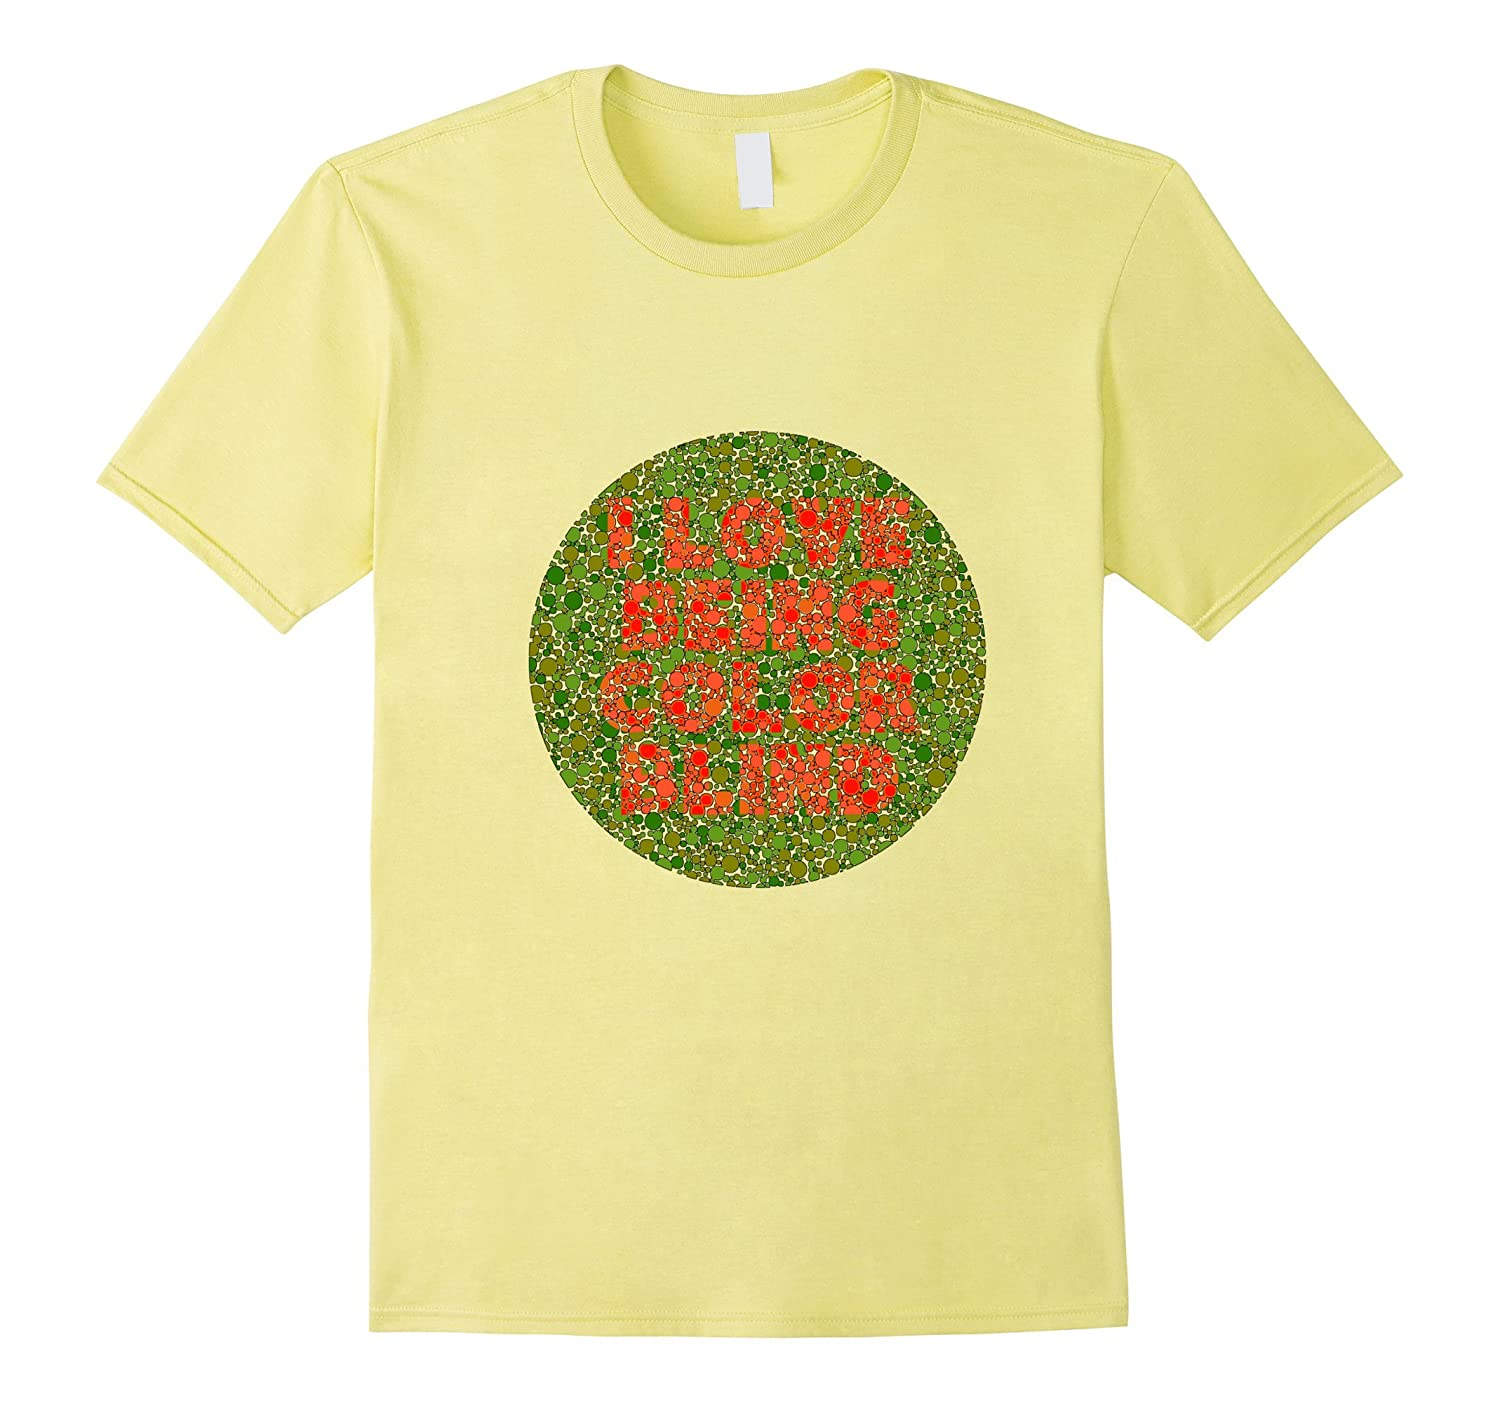 0051a339b I LOVE BEING COLOR BLIND - Funny Colour Blindness T-shirt-ANZ ...